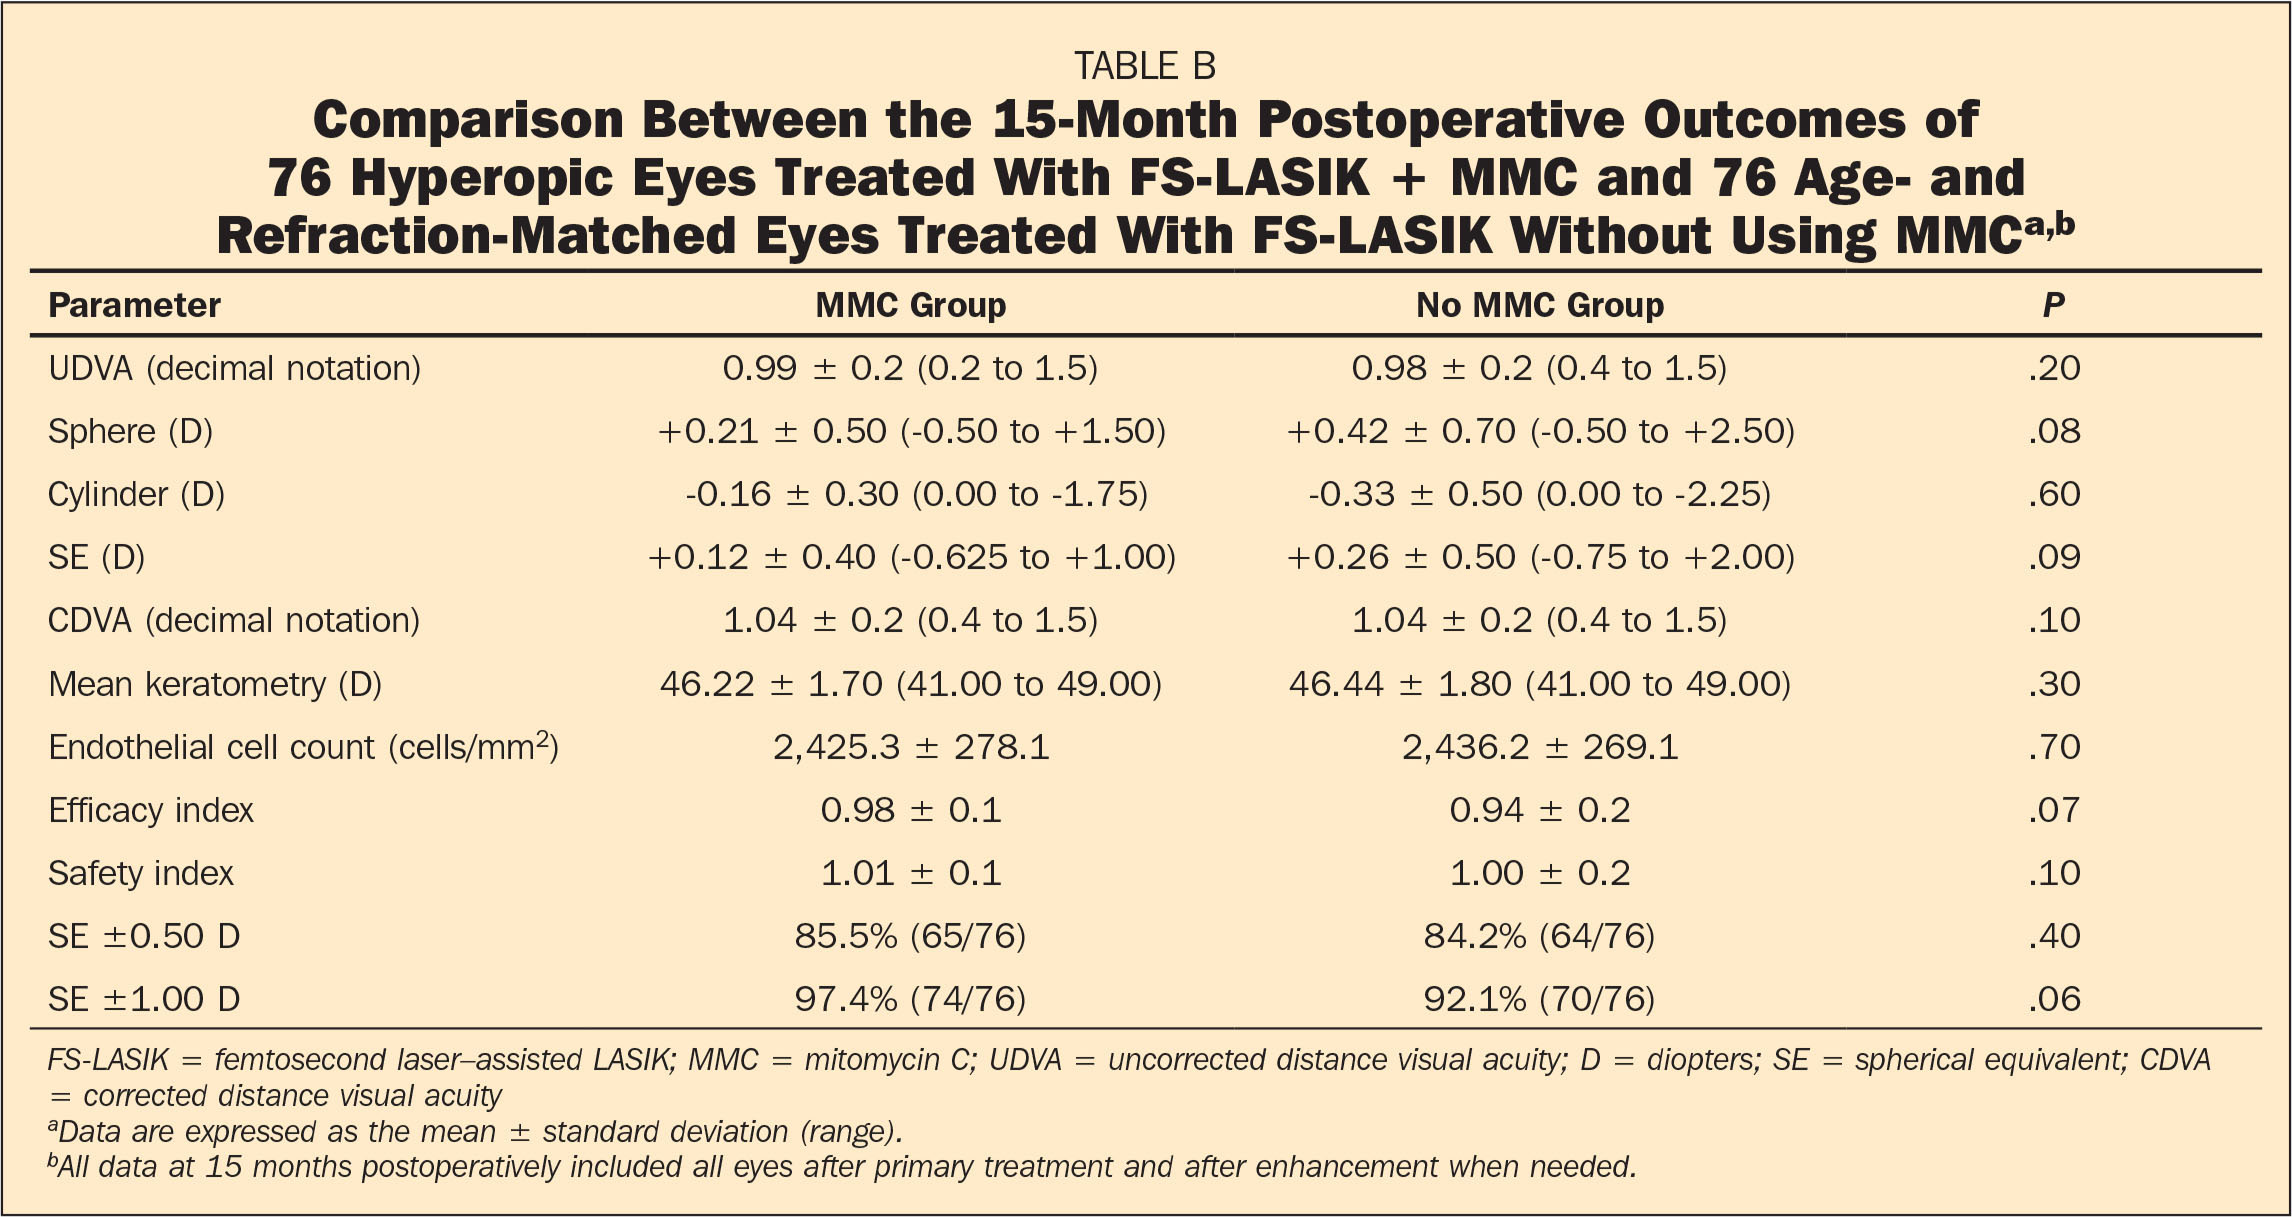 Comparison Between the 15-Month Postoperative Outcomes of 76 Hyperopic Eyes Treated With FS-LASIK + MMC and 76 Age- and Refraction-Matched Eyes Treated With FS-LASIK Without Using MMCa,b